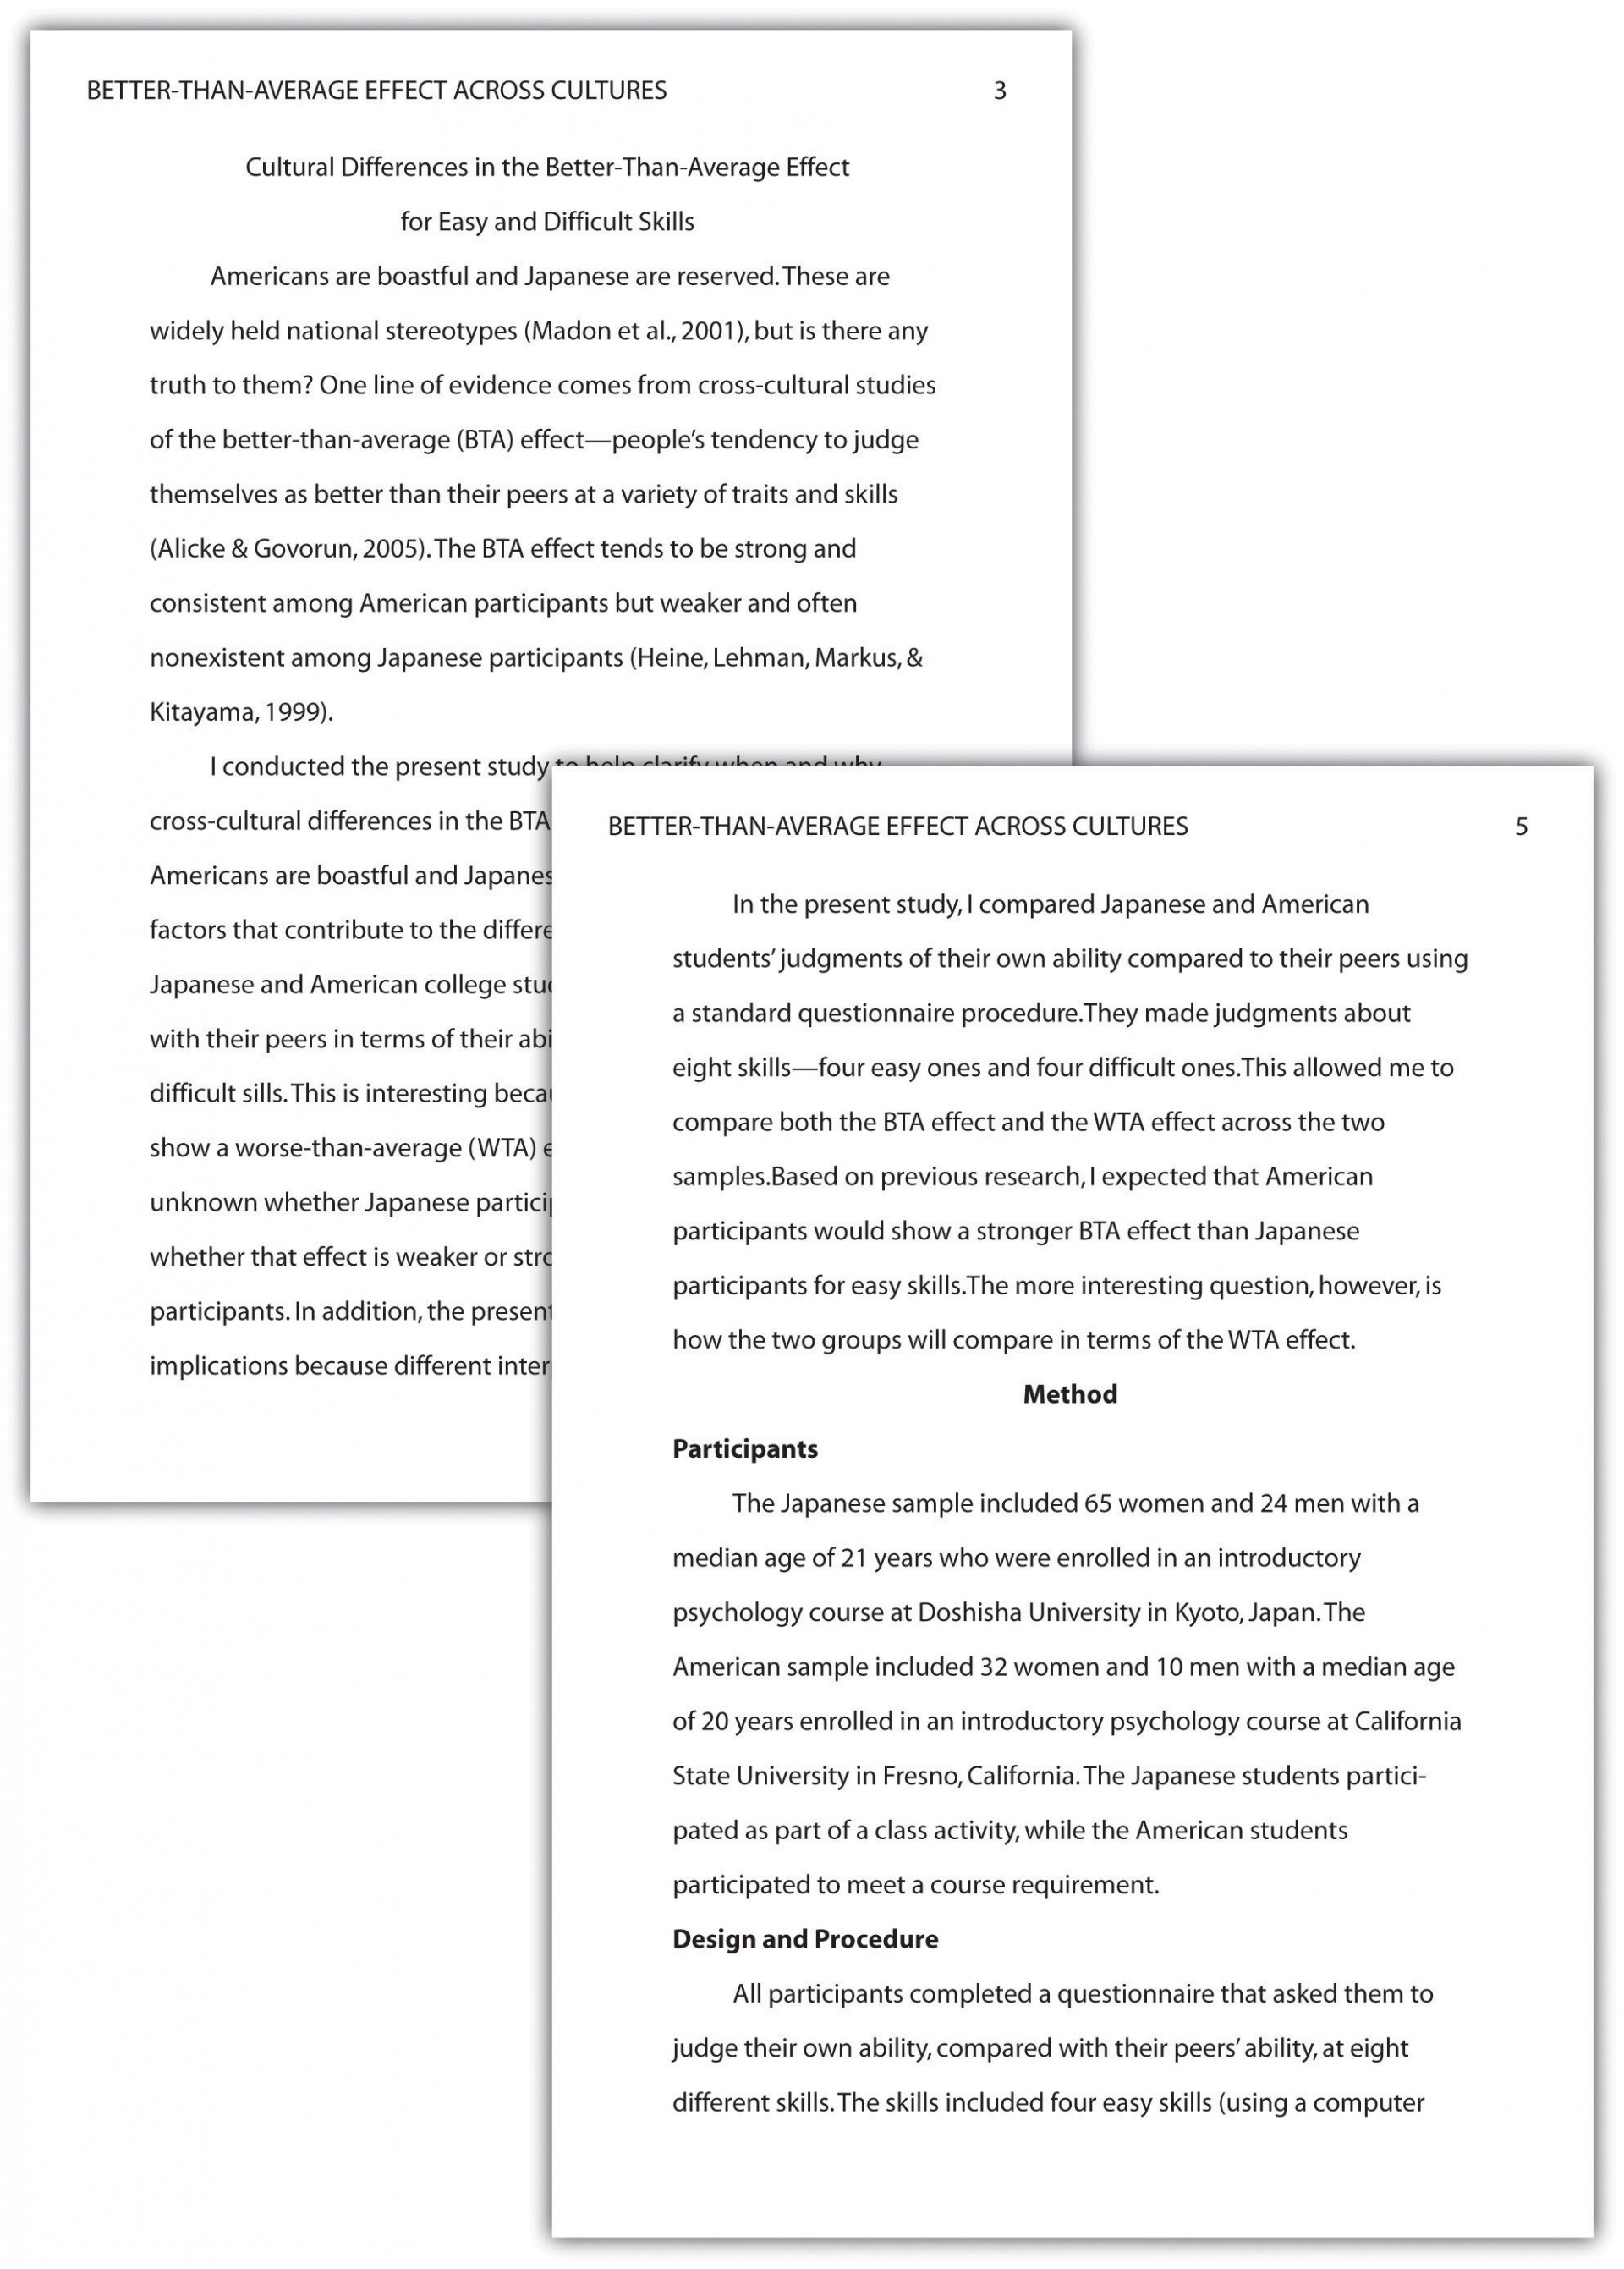 017 Essay Example Apa Best Template Outline Style Structure Format Word 2007 1920